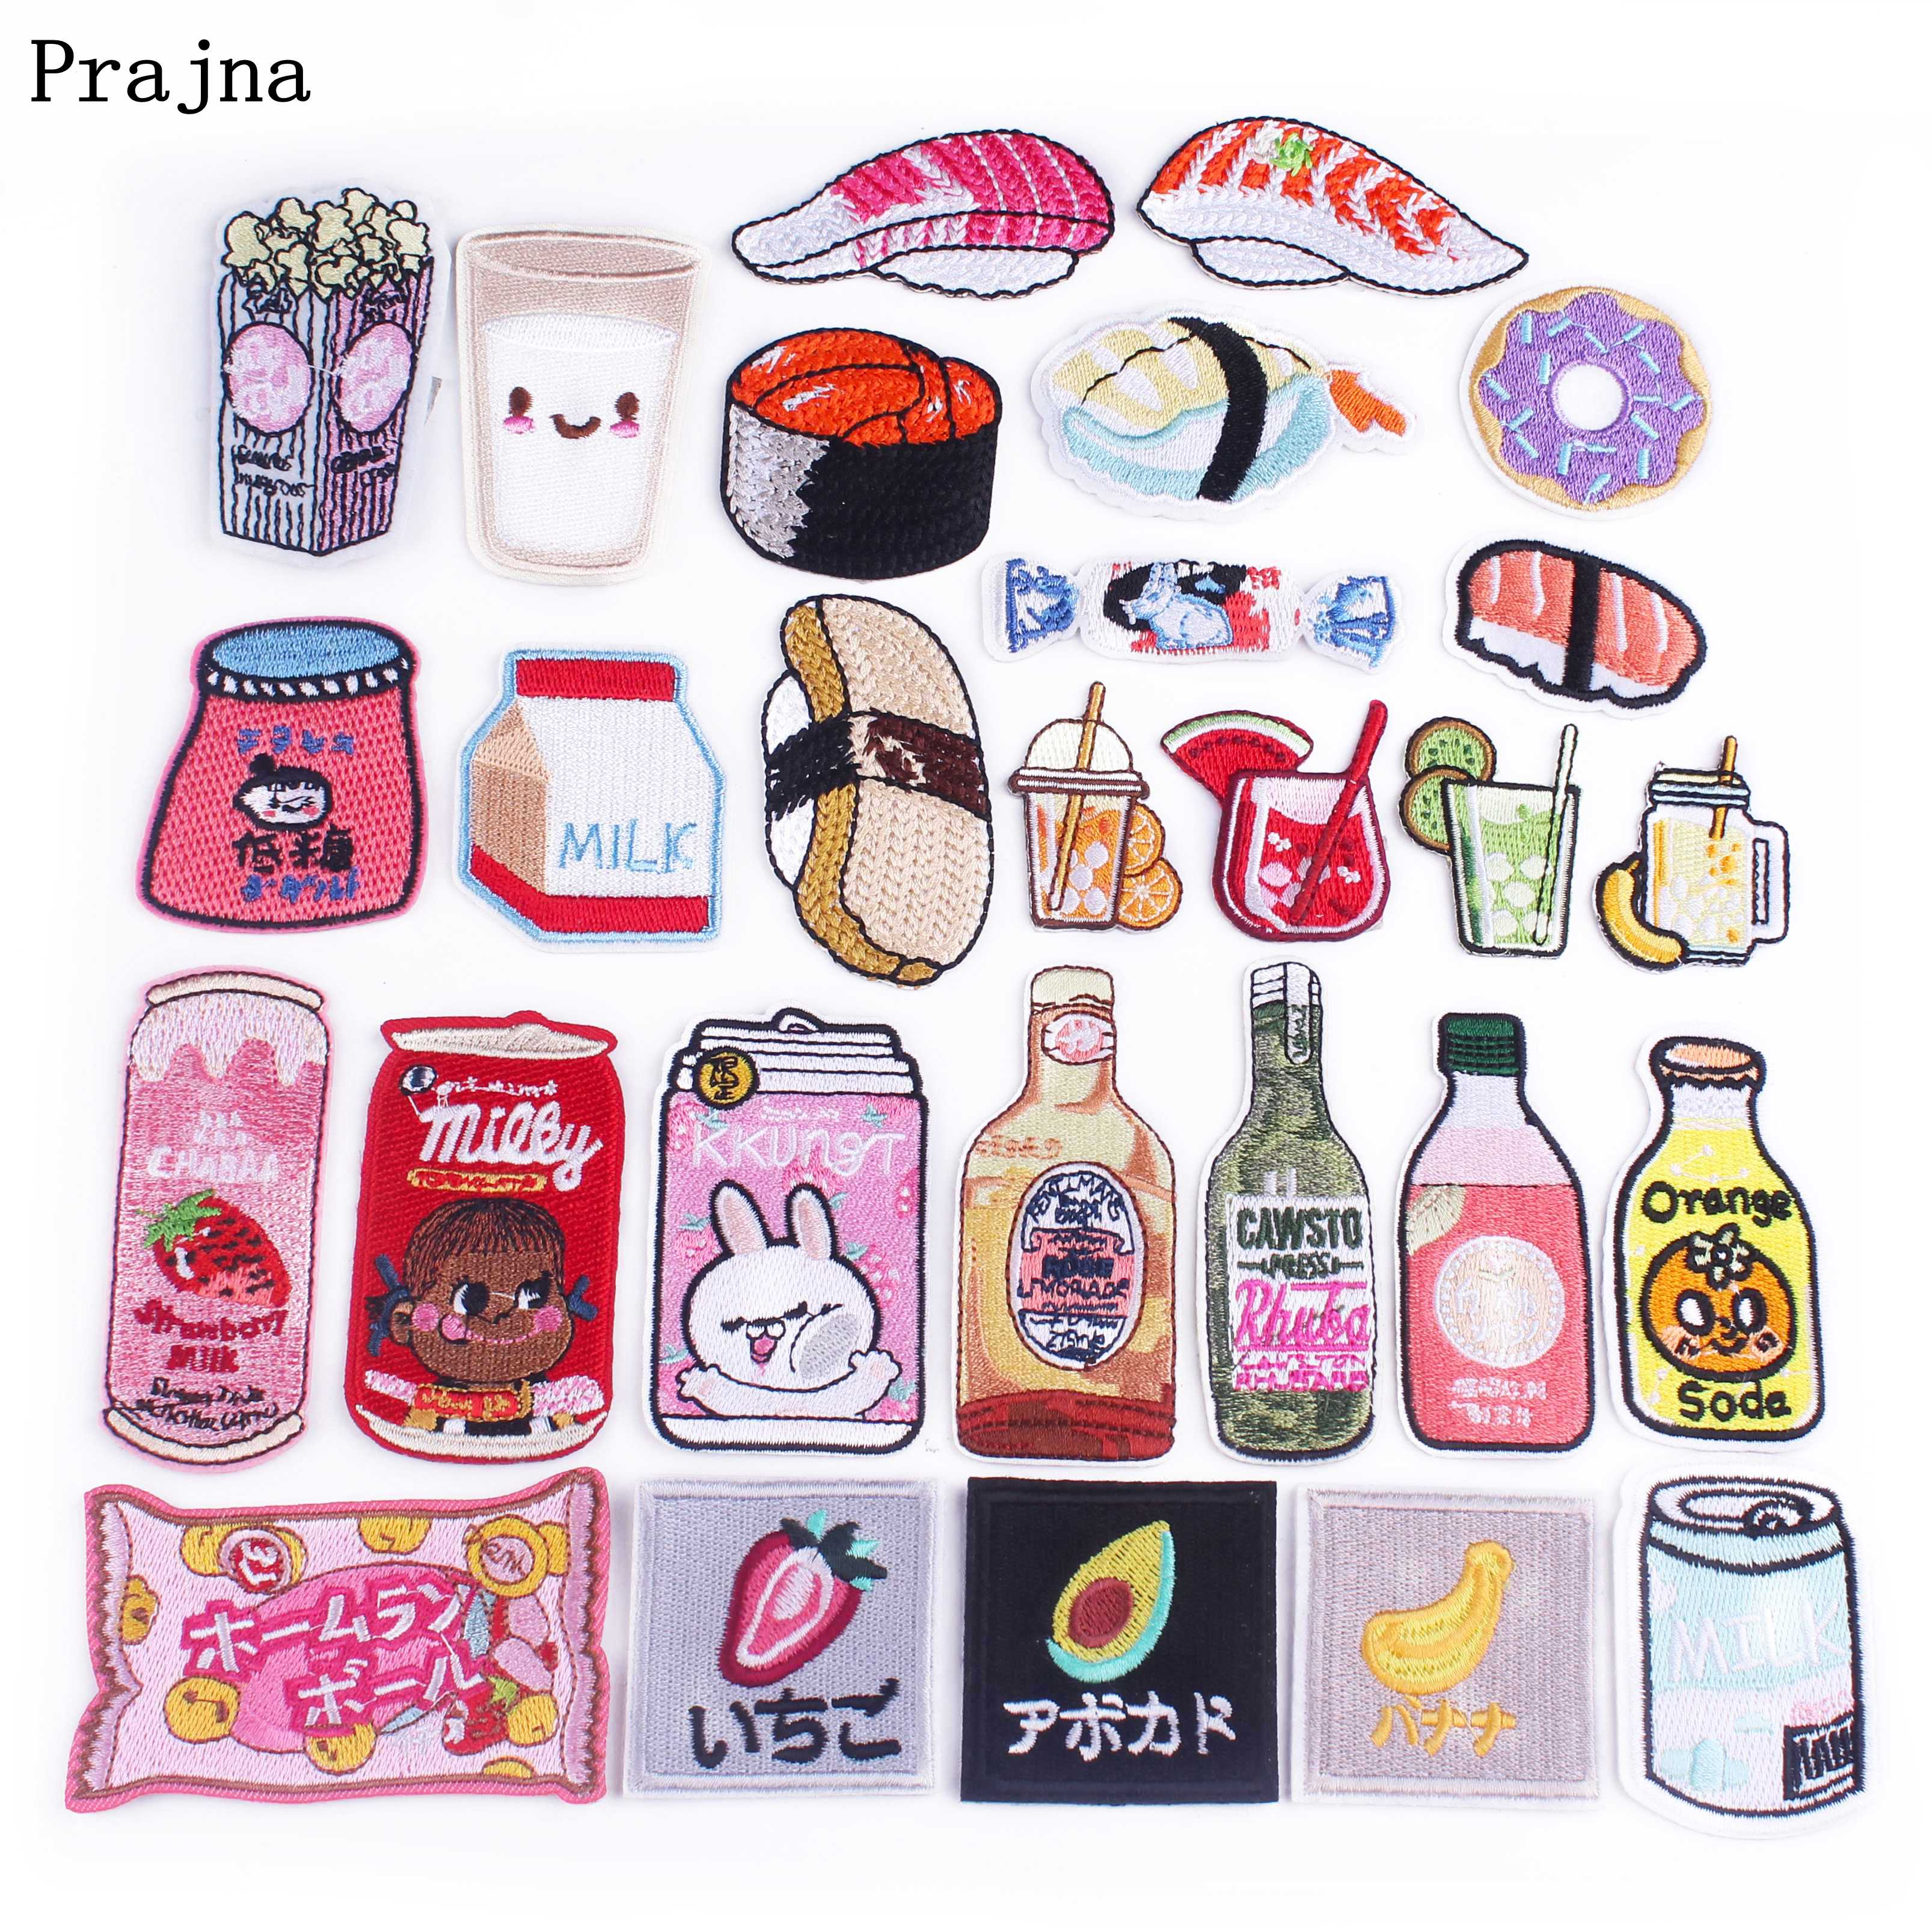 Prajna Cartoon Patch Sushi Drink Iron On Patches For Clothing Embroidery Stripe On Clothes Diy Cute Applique Badge High Quality Patches Aliexpress